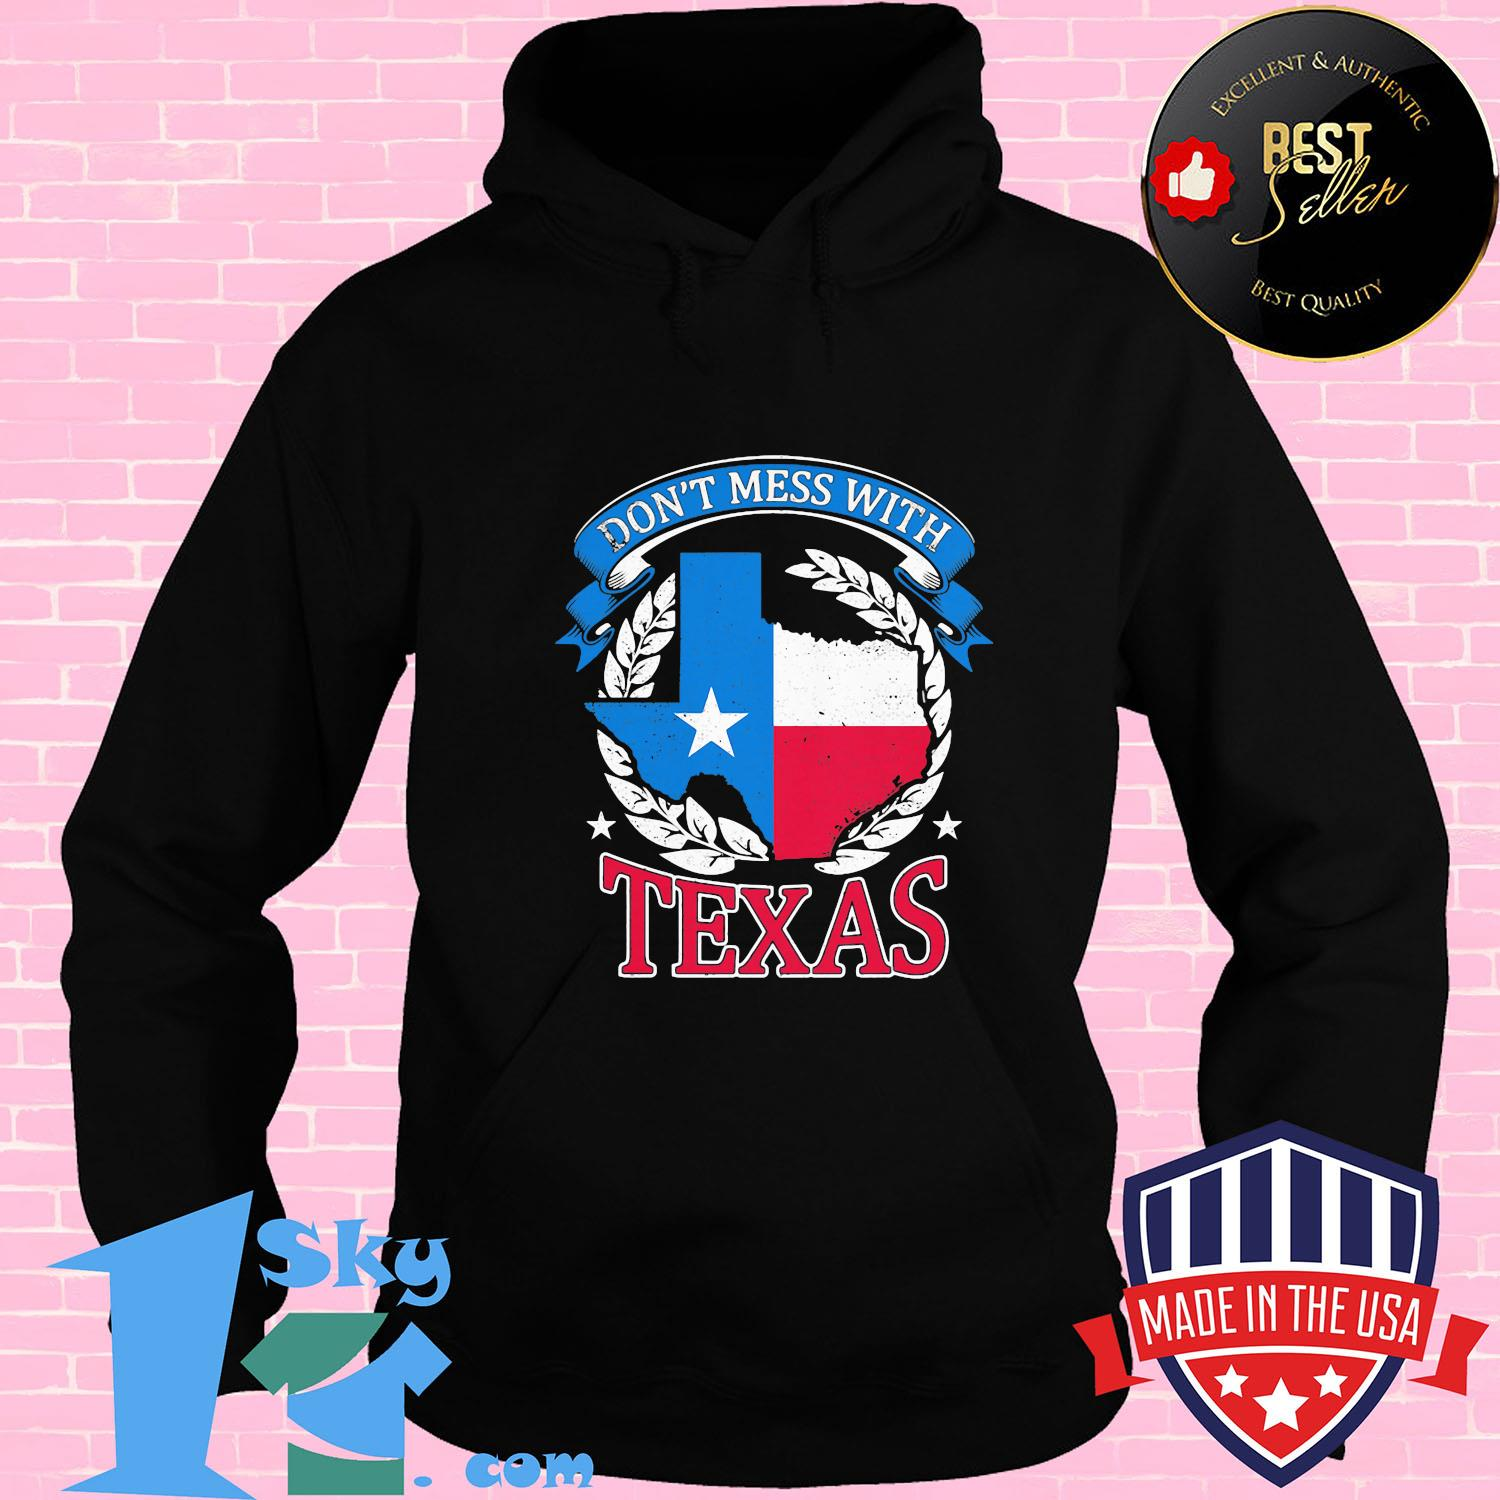 dont mess with texas flag shirt Hoodie - Shop trending - We offer all trend shirts - 1SkyTee